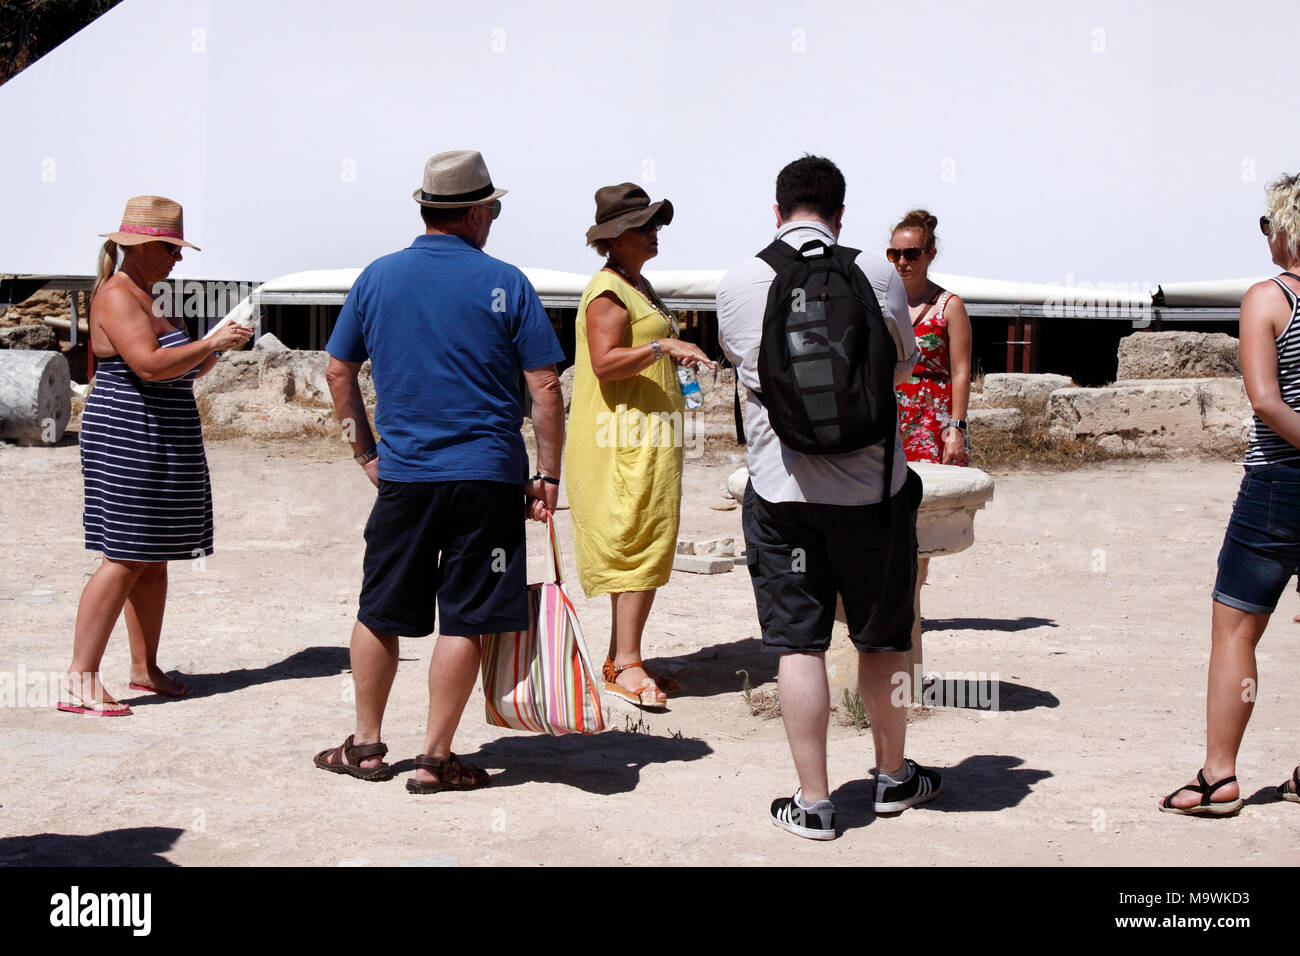 A FEMALE GUIDE LEADING A TOURIST GROUP WITHIN THE ANCIENT RUINS OF SALAMIS. NORTHERN CYPRUS - Stock Image